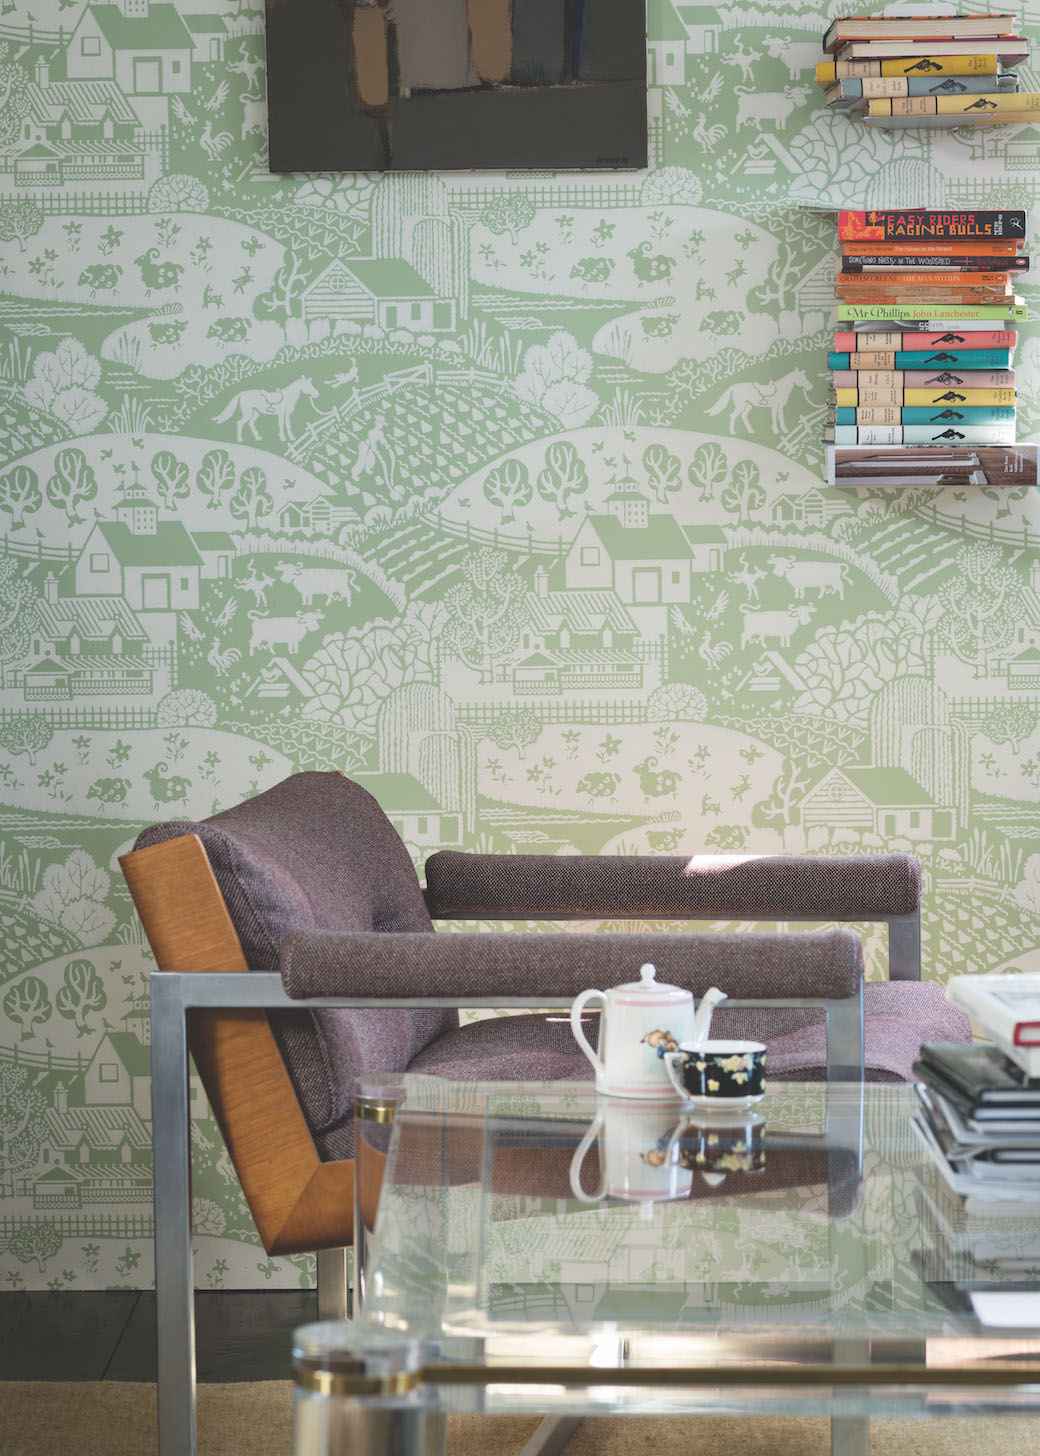 Farrow & Ball wallpaper collection AW16.